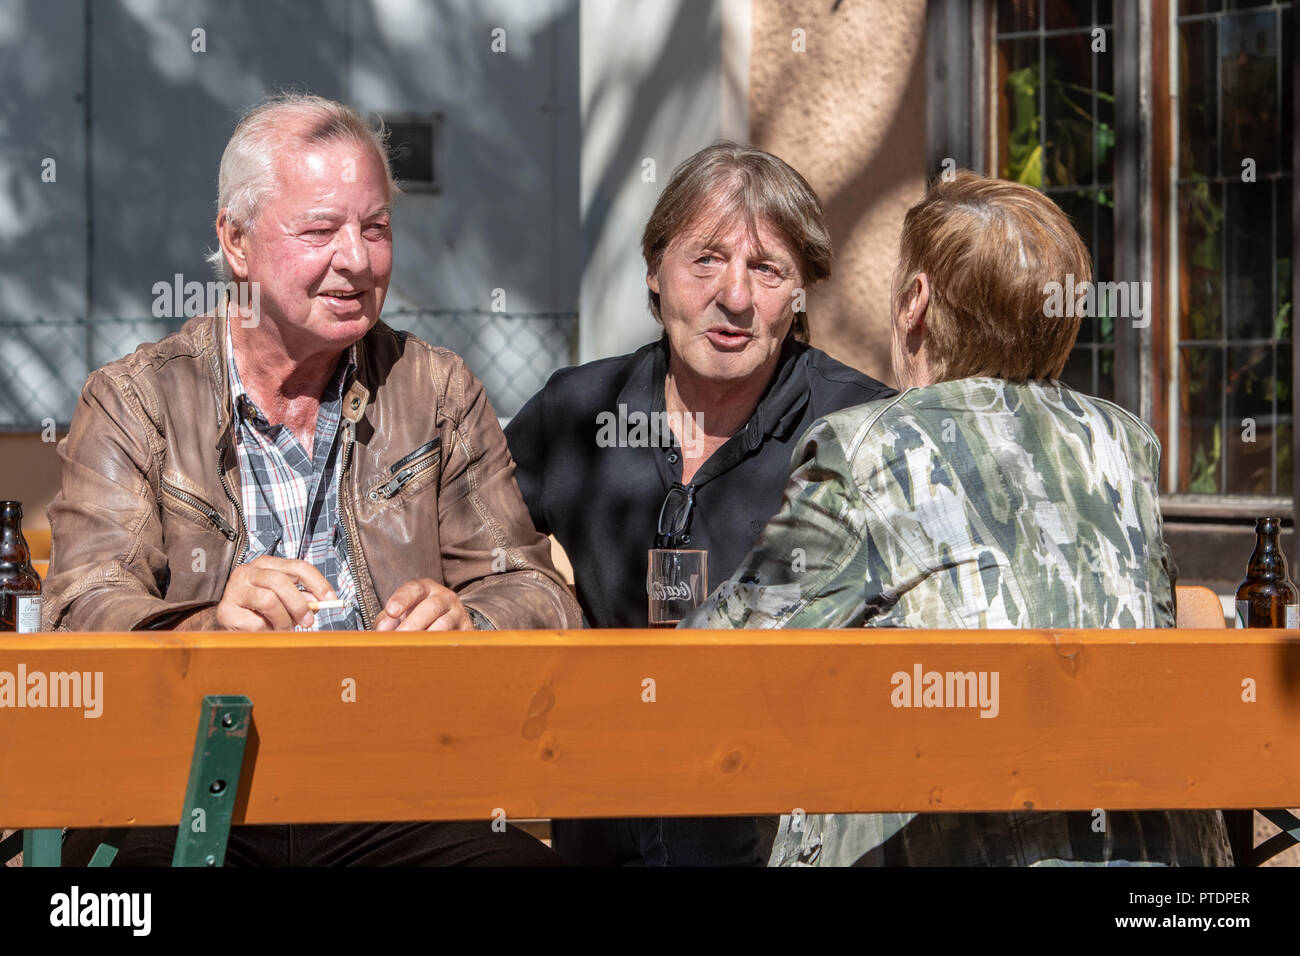 Deggendorf, Bavaria. 27th Sep, 2018. The pub visitors Ferdinand Koller (l) and Karl Siebert and a woman sit at a table and discuss the upcoming state election. (Zu dpa-KORR 'Vom Ende der Beschaulichkeit - Deggendorf und der AfD-Stempel' from 09.10.2018) Credit: Armin Weigel/dpa/Alamy Live News - Stock Image